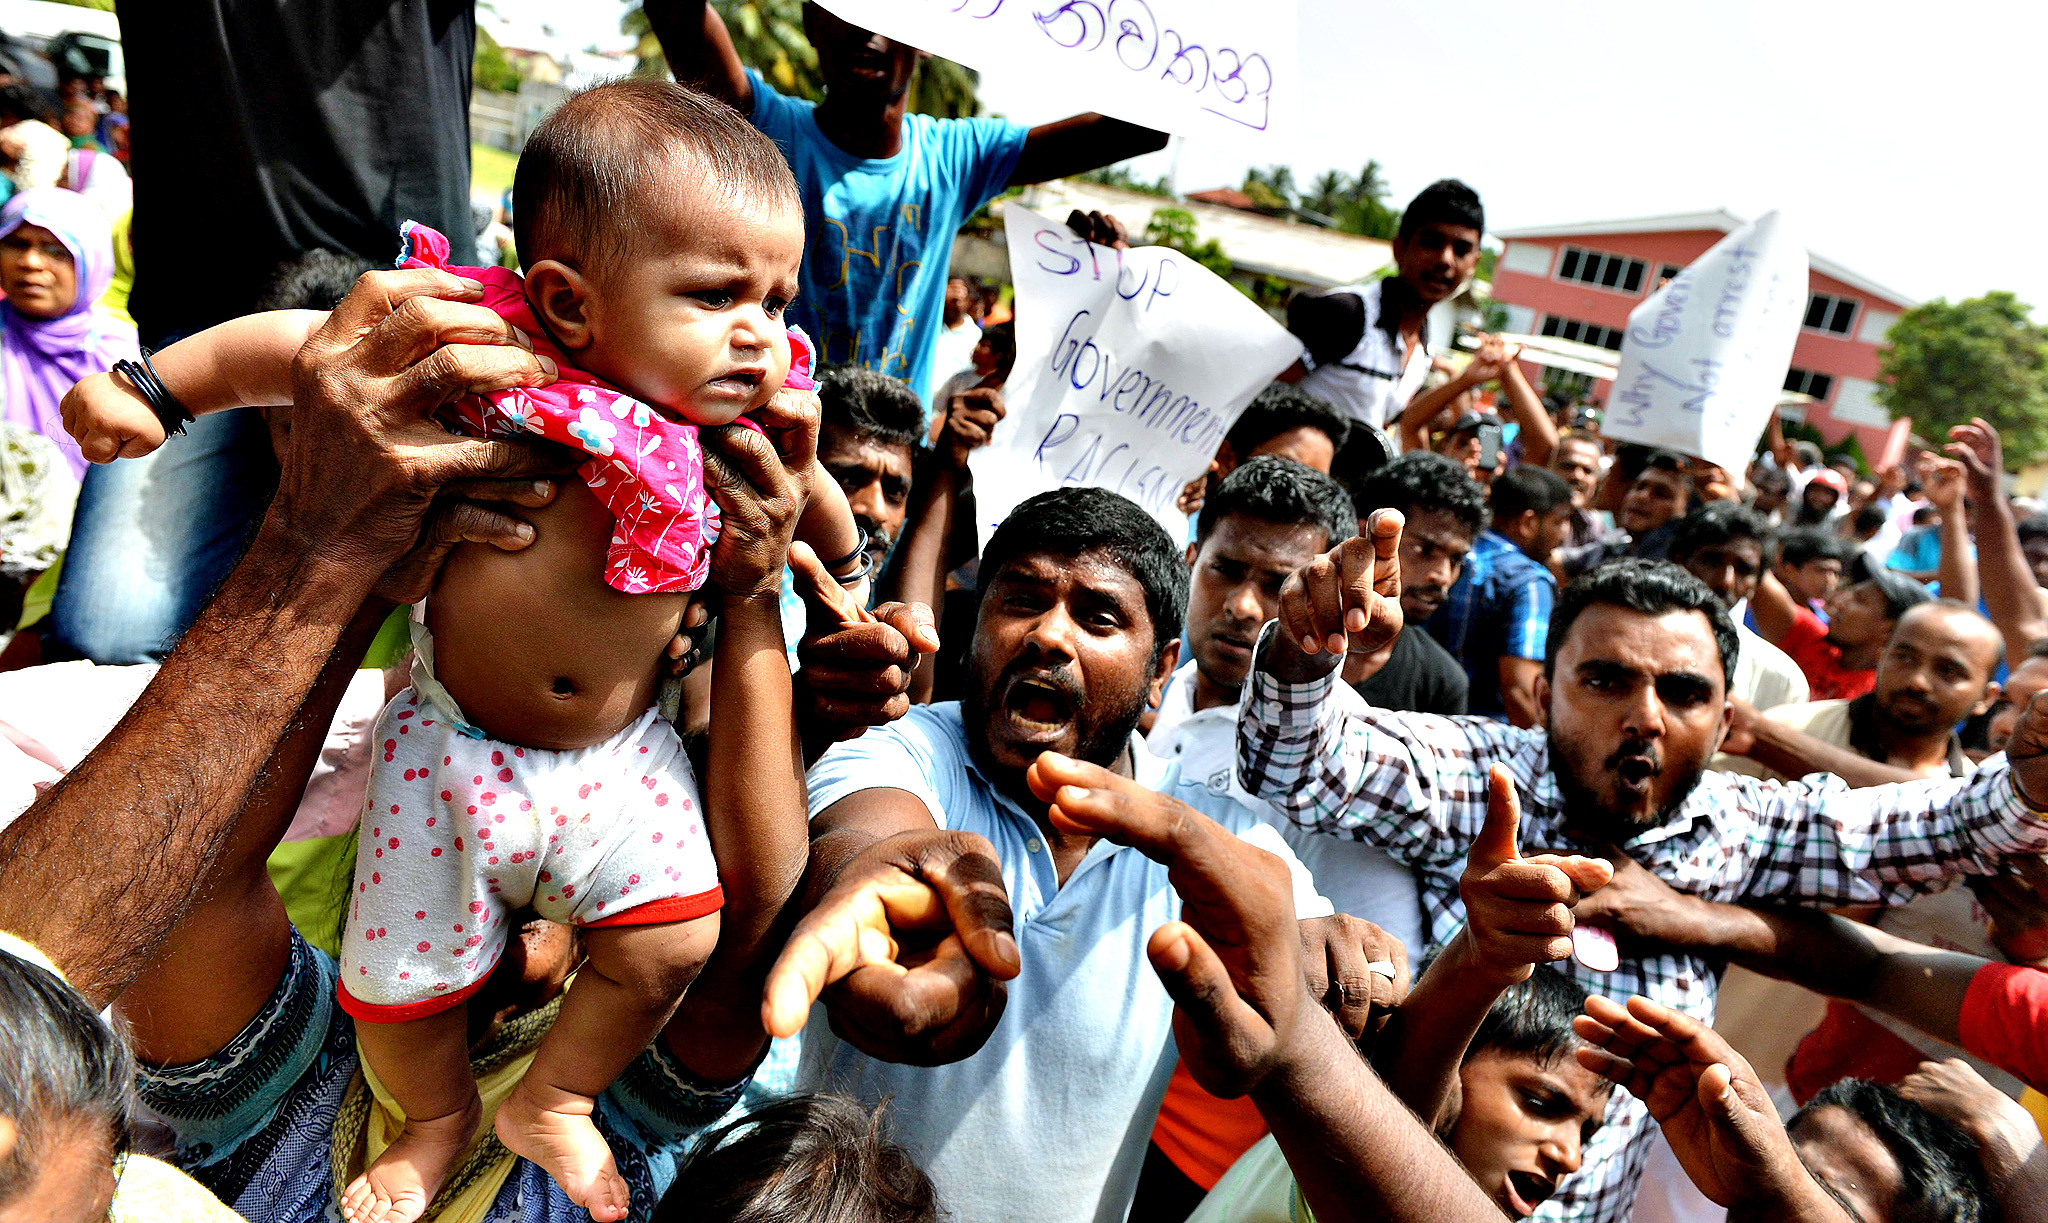 Sri Lankan muslims, made homeless after two days of anti-muslim riots in Sri Lankas tourist region of Alutgama, demonstrate against radical Buddhist group Bodu Bala Sena (BBS)at a makeshift camp in Beruwala, about 58 kms south of capital Colombo on June 18, 2014.  The Buddhist Force, or BBS, is widely accused of leading the violence. The main Muslim party in Sri Lanka's ruling coalition, Sri Lanka Muslim Congress (SLMC), demanded a UN probe into one of the worst religious riots as President Mahinda Rajapakse toured the violence-hit resort region.